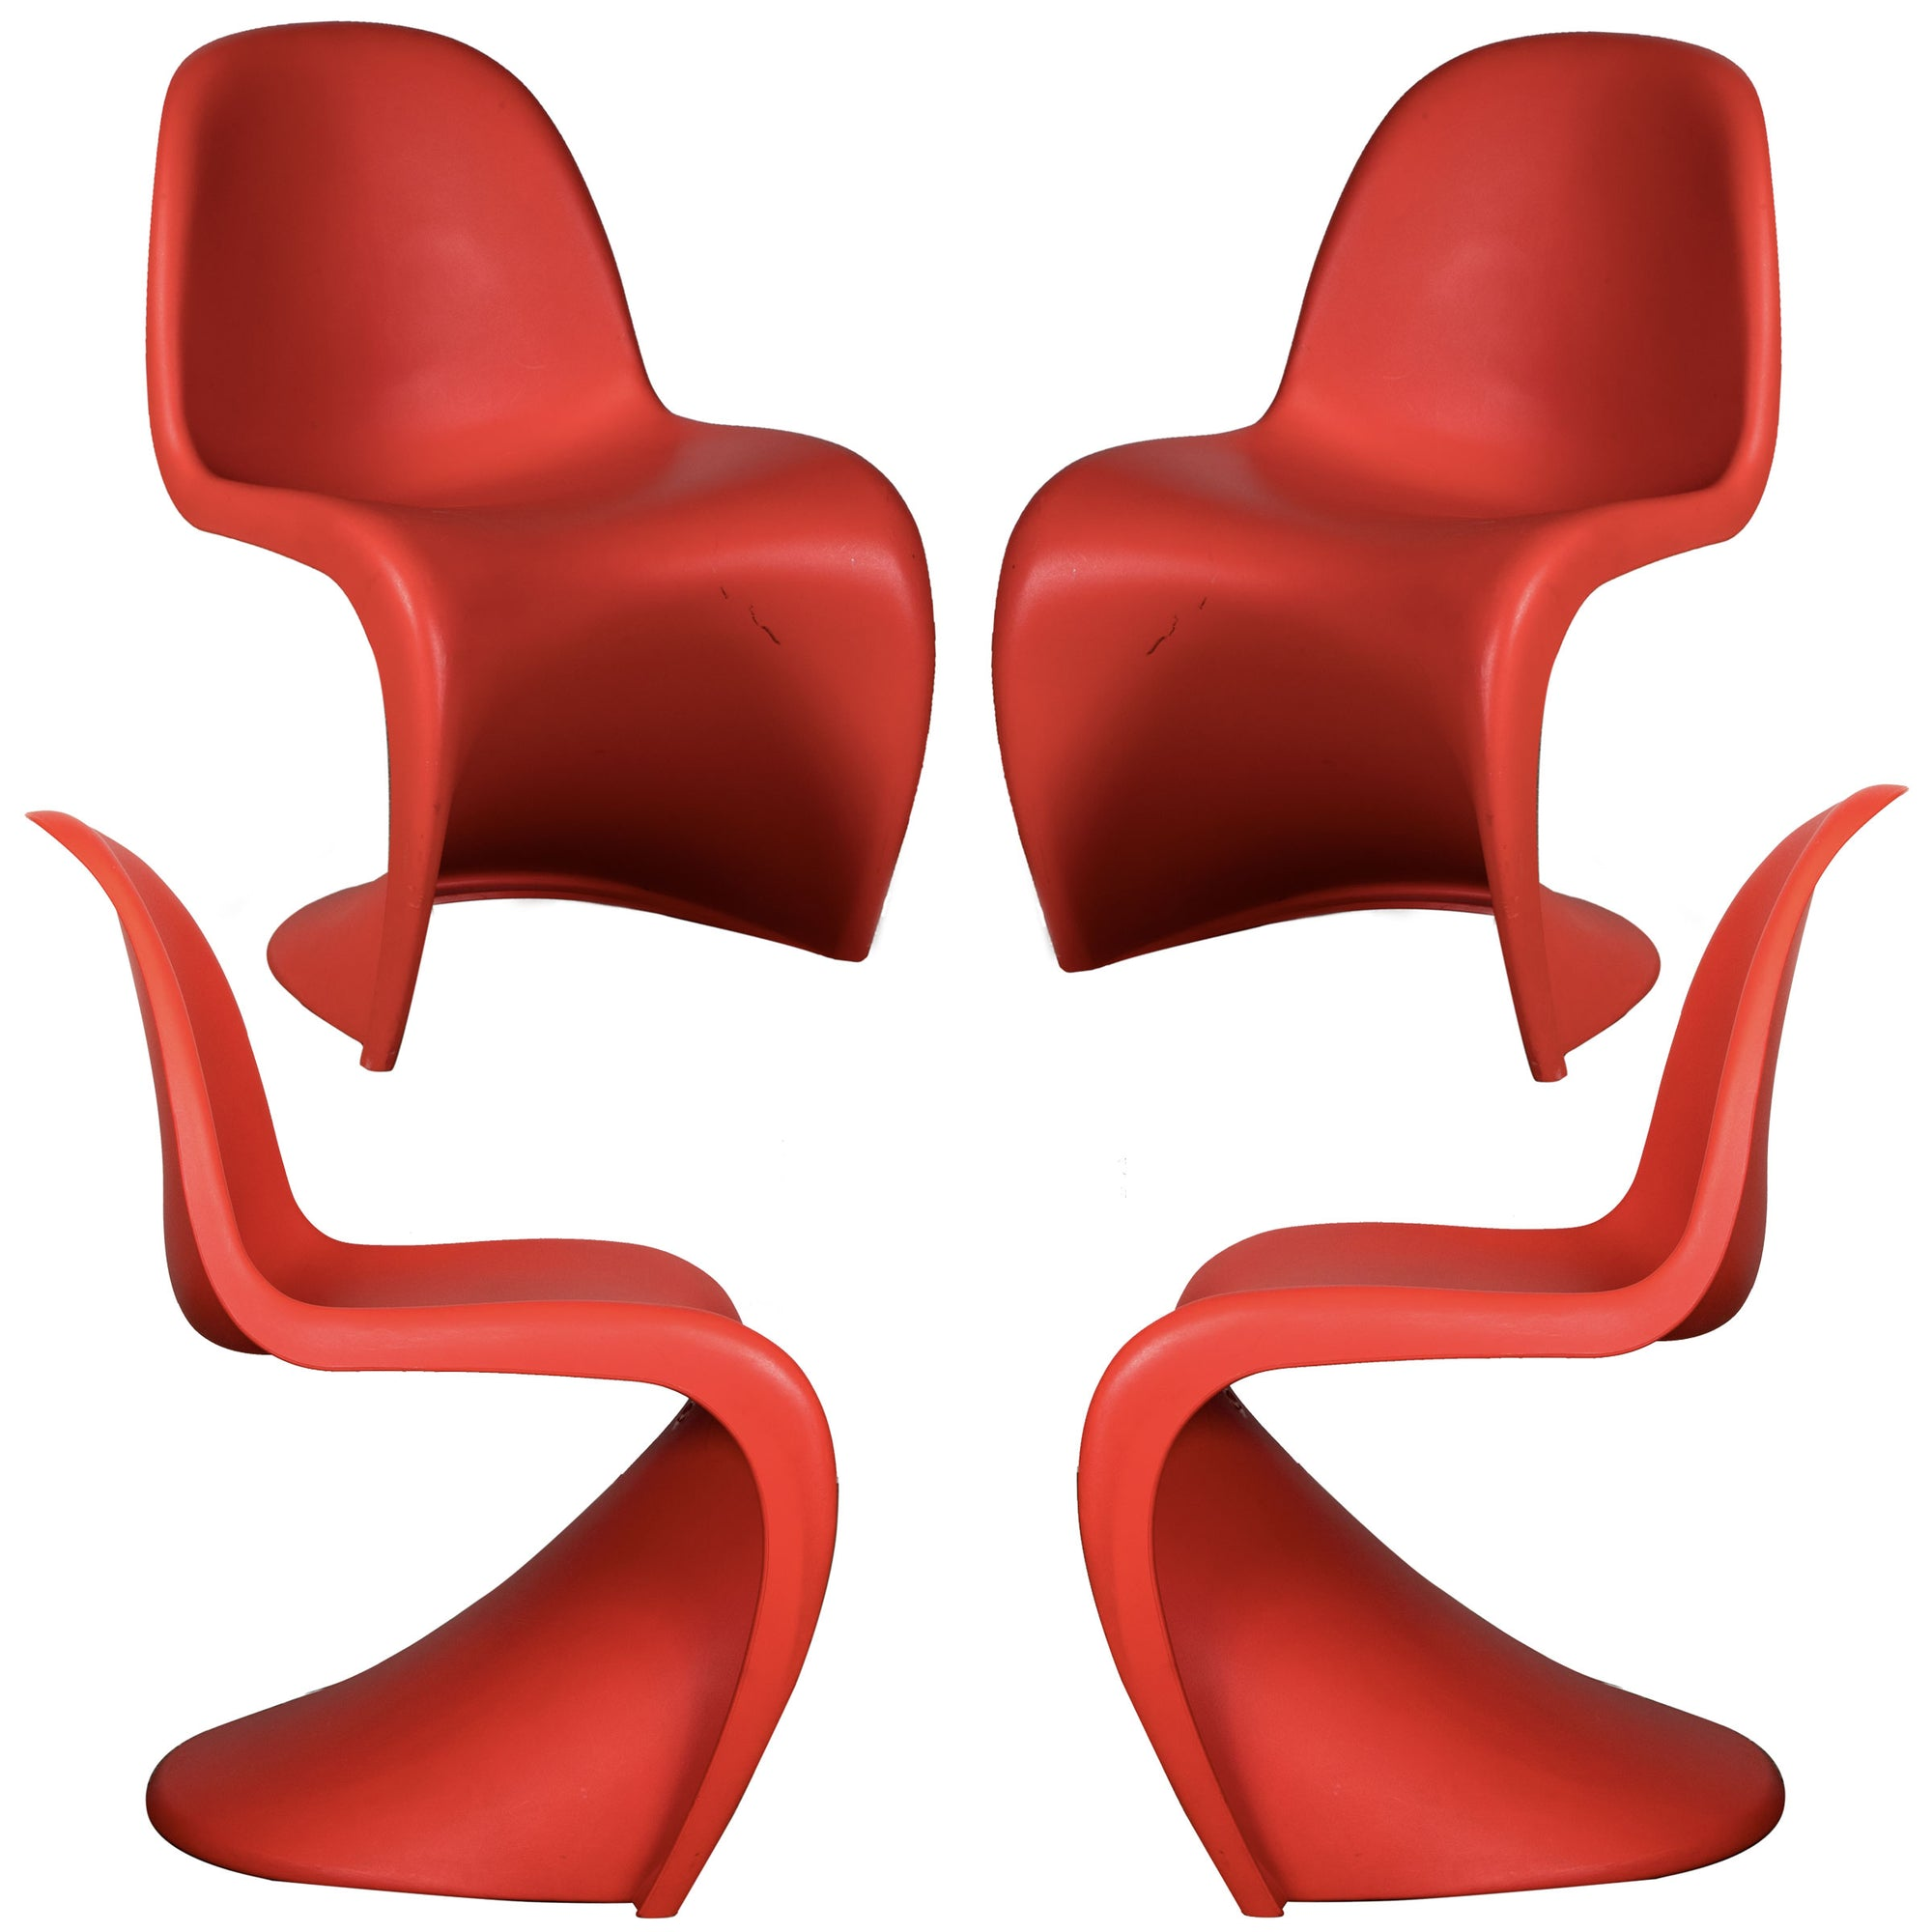 Original Verner Panton S Chair (set of 4)